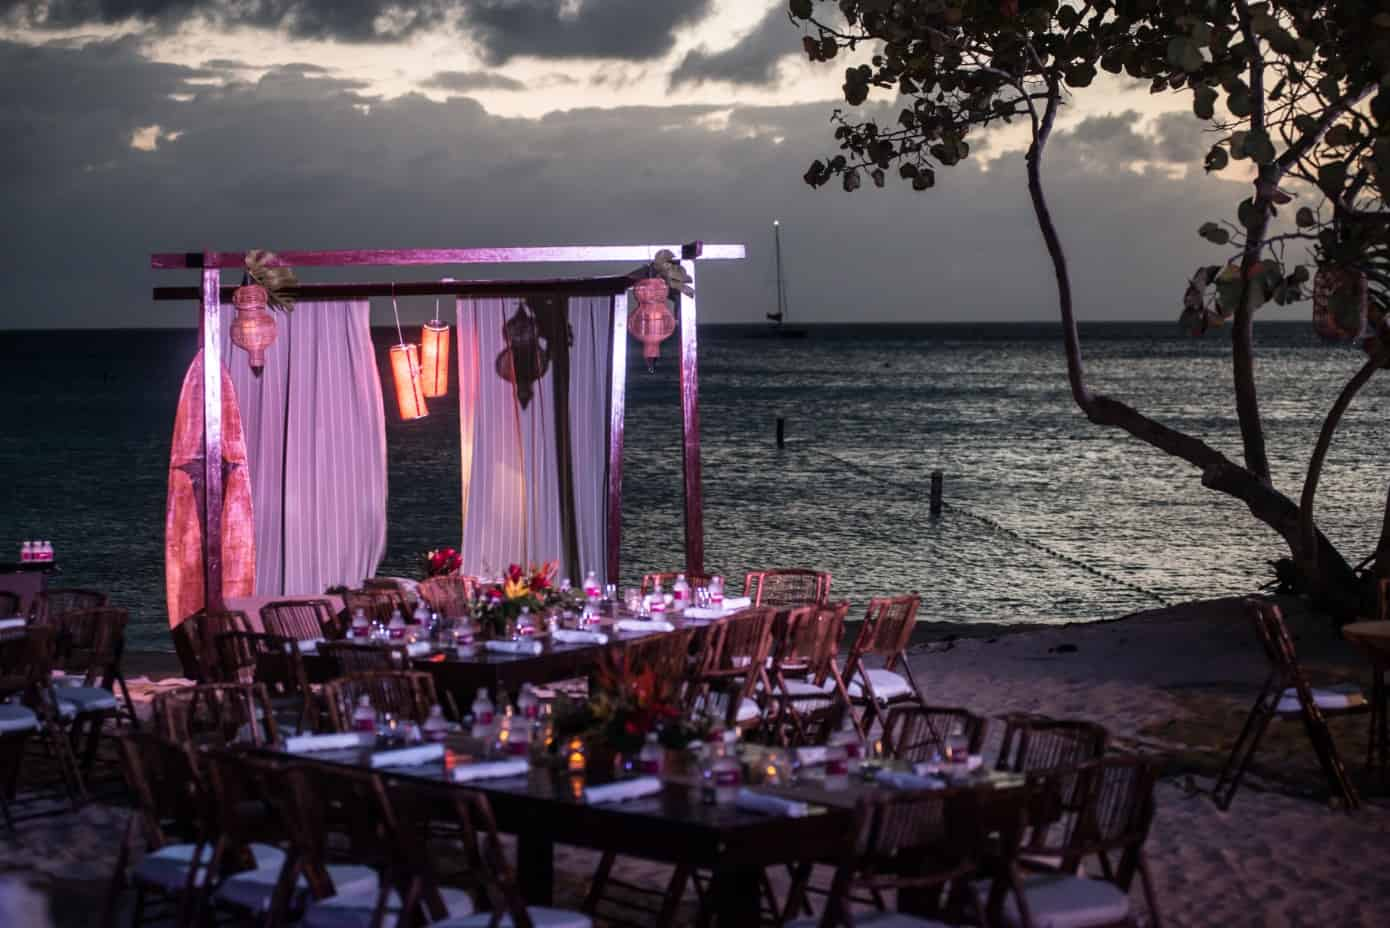 cabana-tables-cayman-islands-beach-reception-corporate-event-by-celebrations-ltd